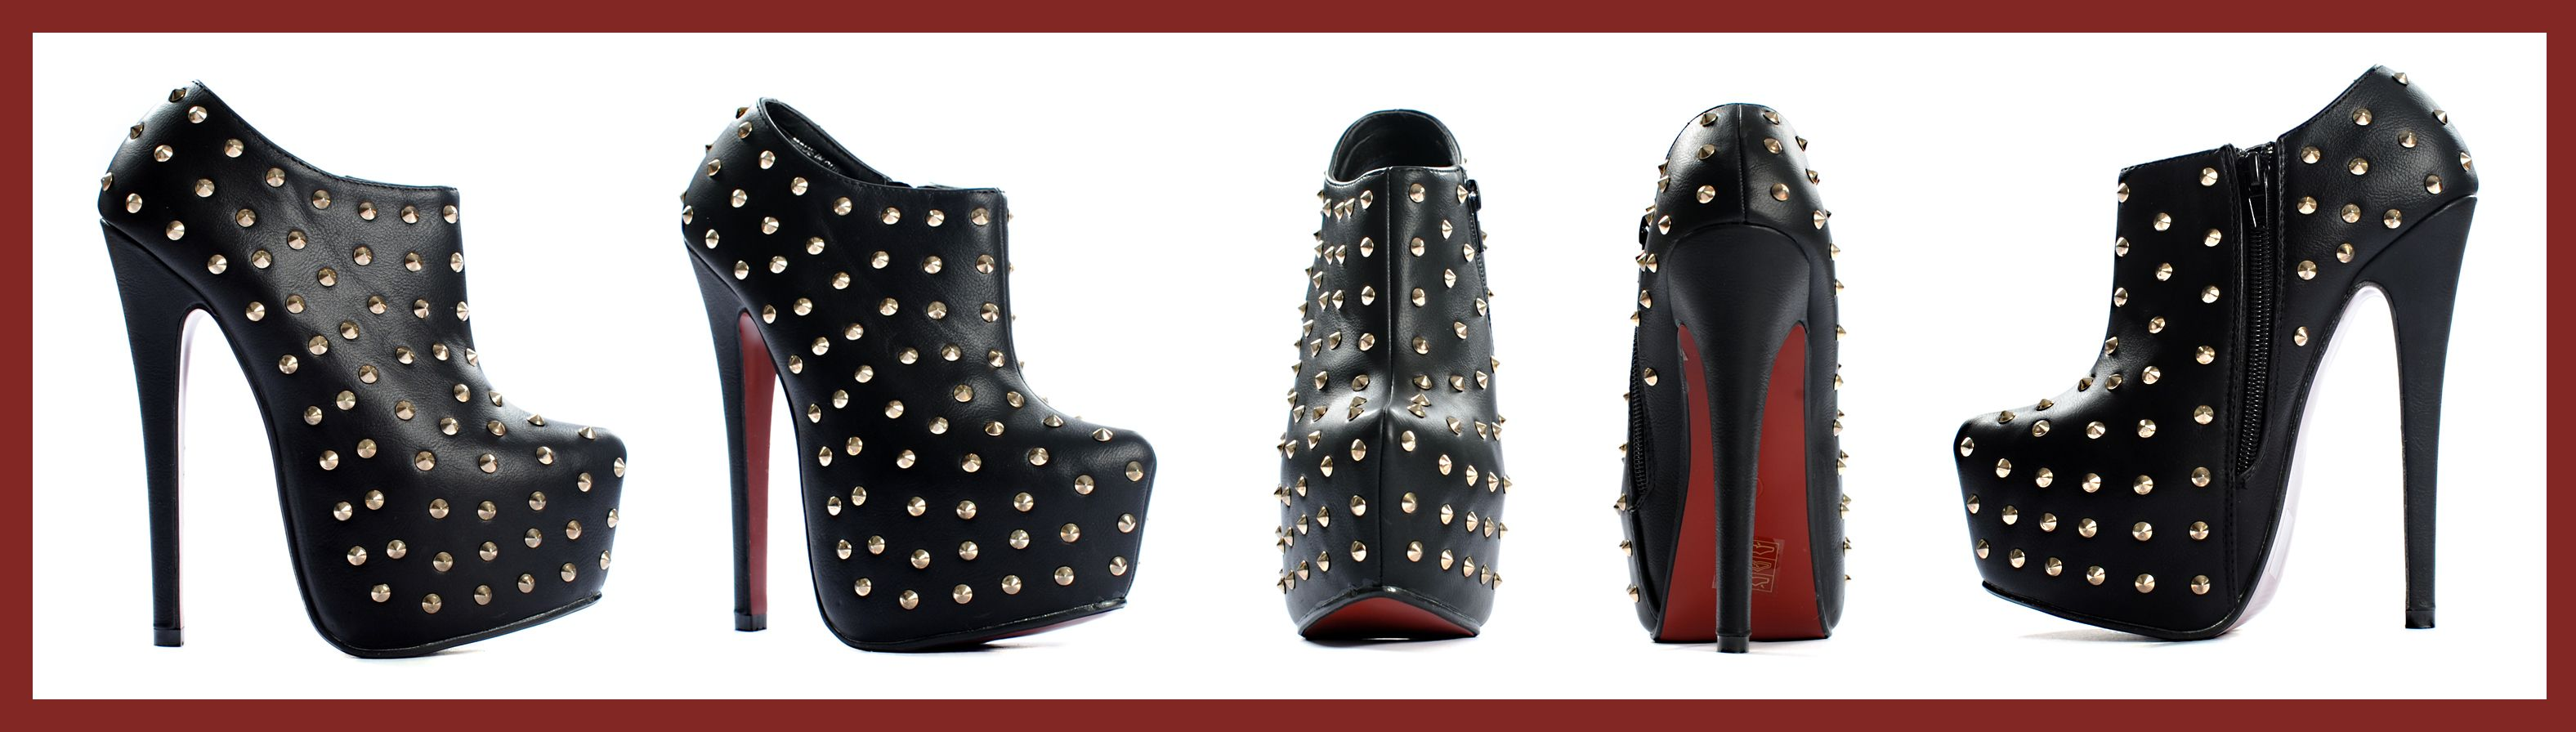 Niittinilkkurit - Ankle Boots with Studs